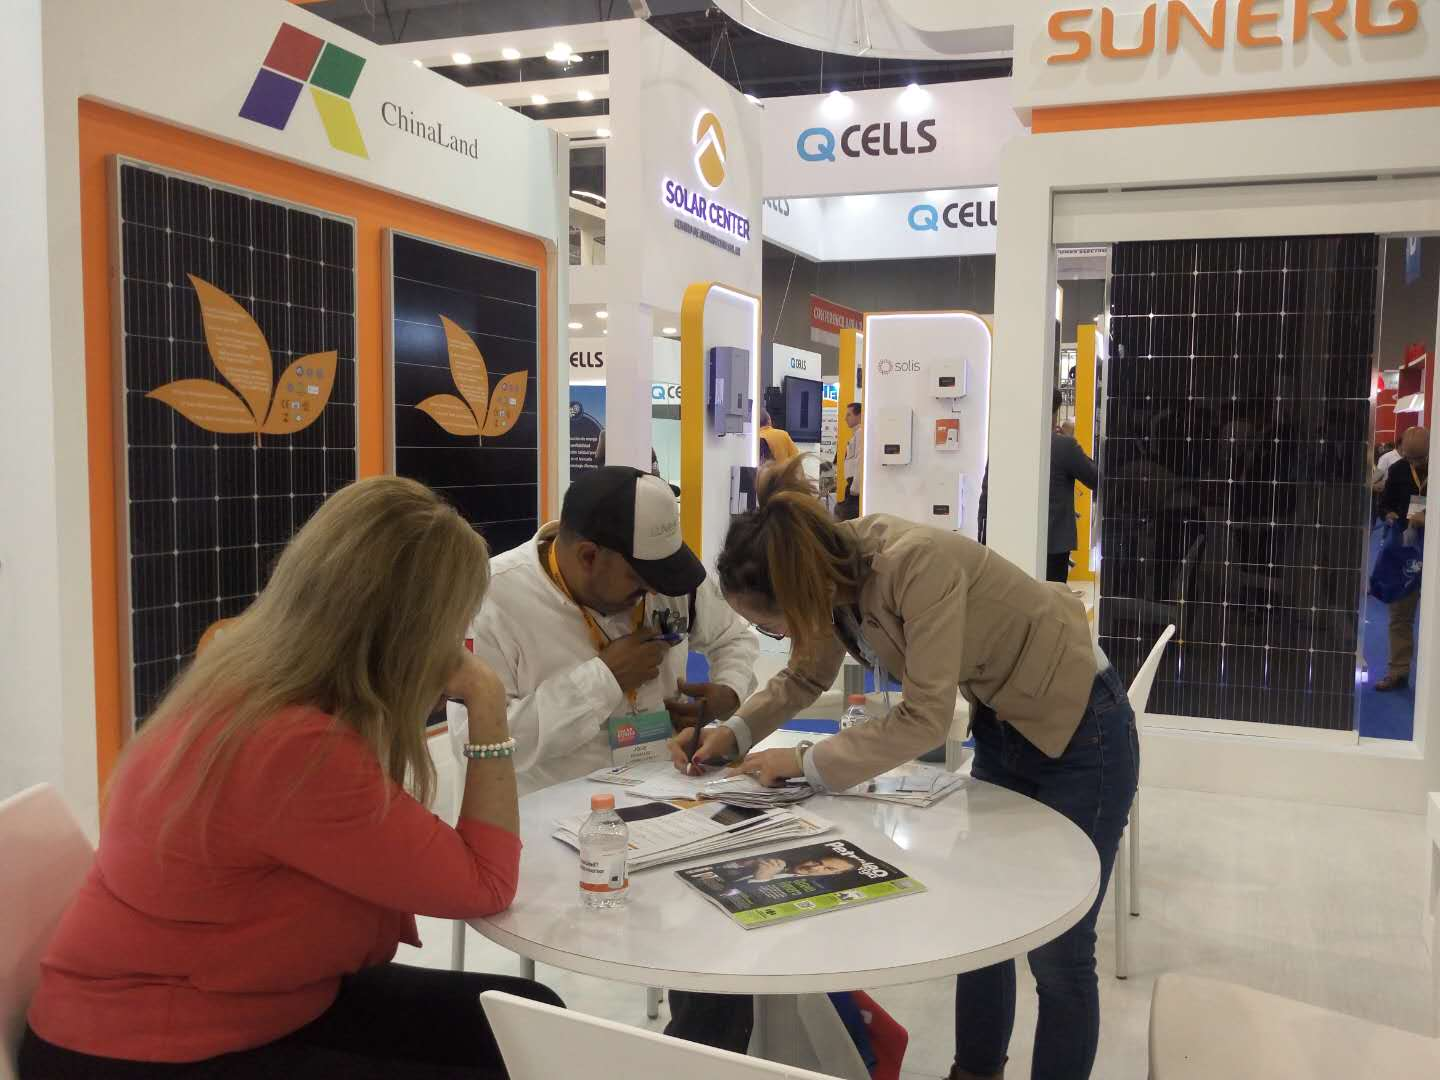 SUNERGY SHINEING THE SOLAR POWER MEXICO